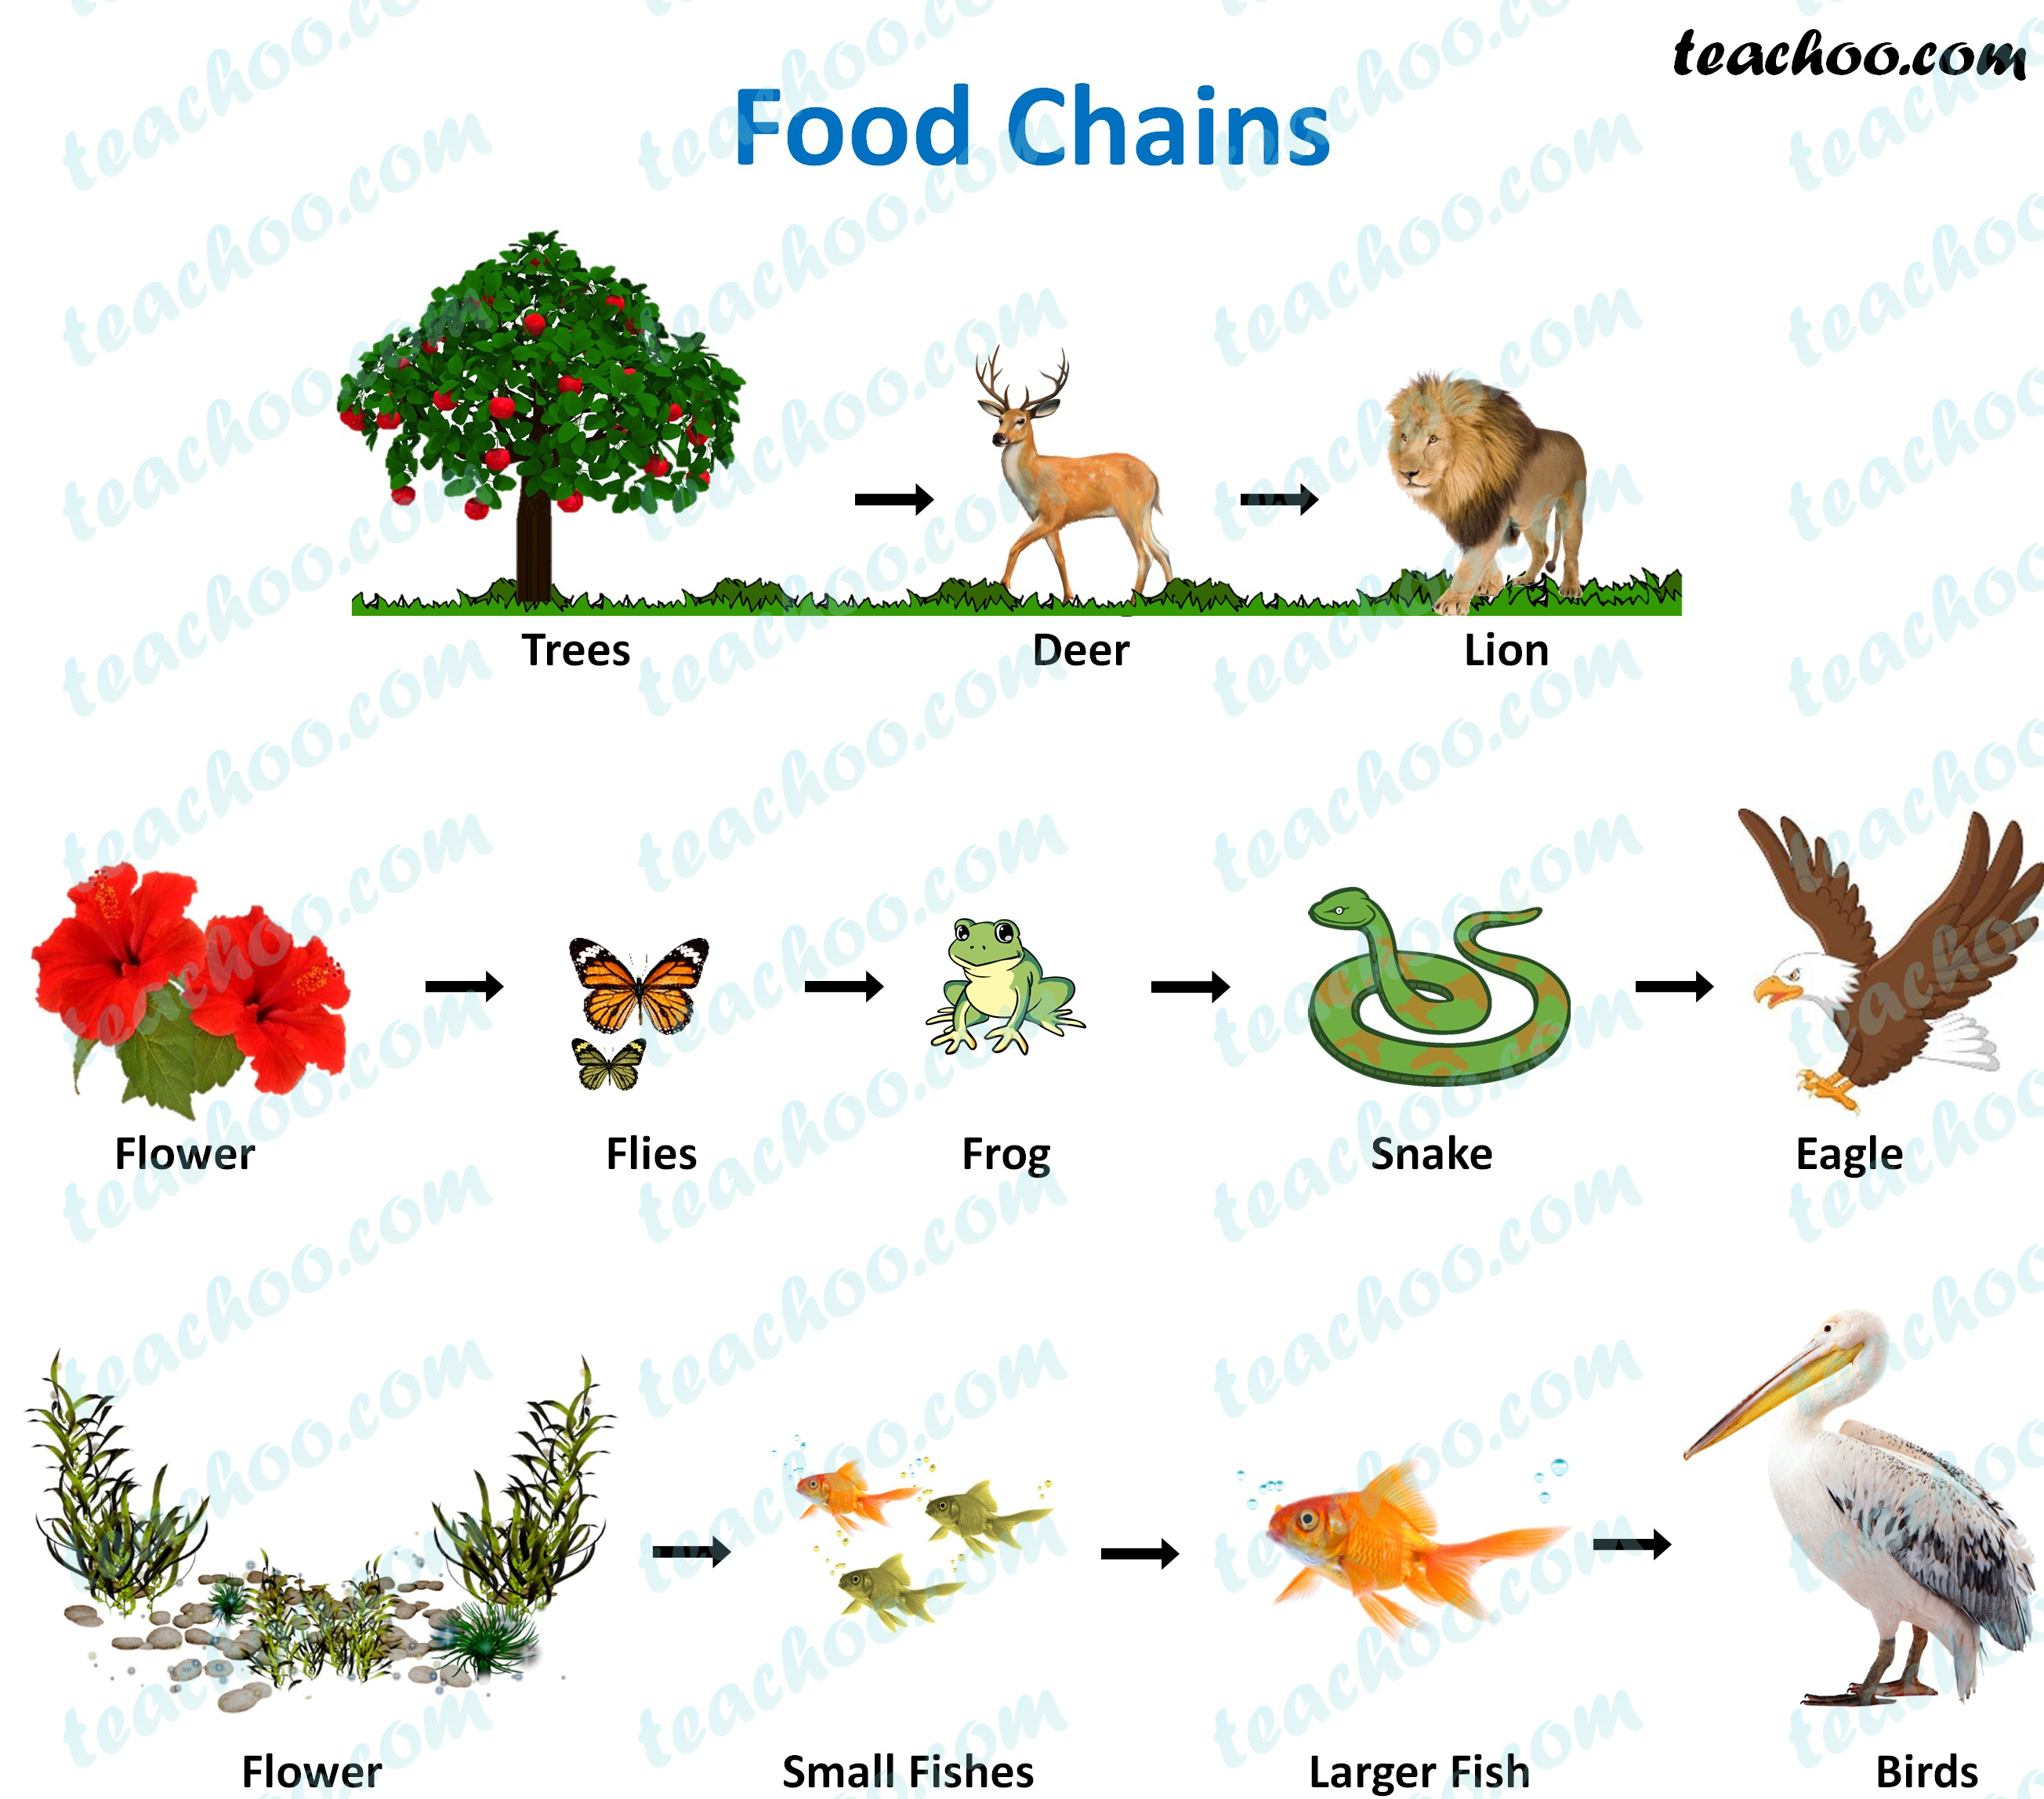 Food Chain and Food Web - Meaning, Diagrams, Examples - TeachooTeachoo